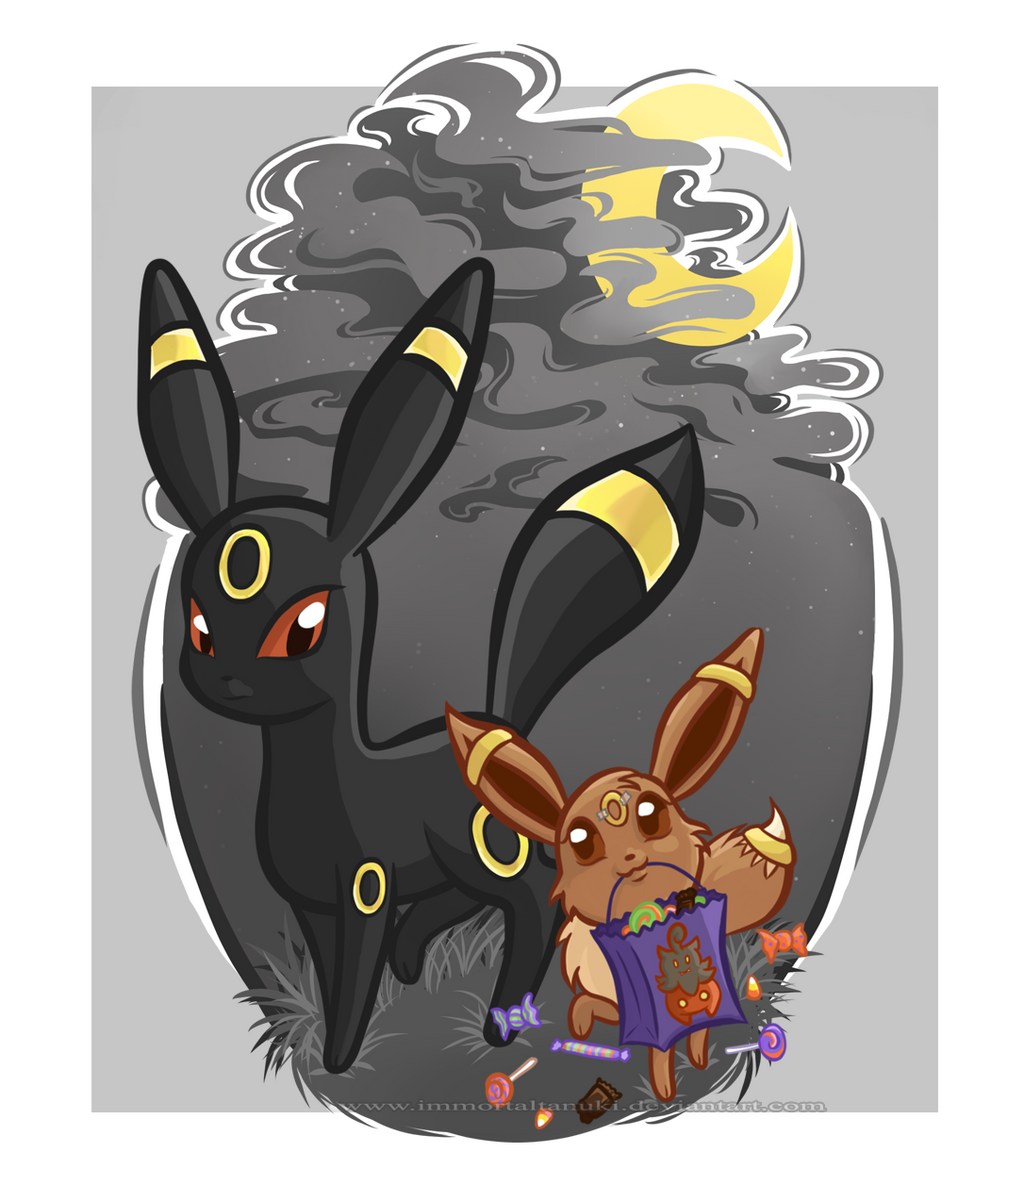 Simple Wallpaper Halloween Eevee - eevee_evolutions___umbreon_by_immortaltanuki-d7djqo2  Graphic_299981.png